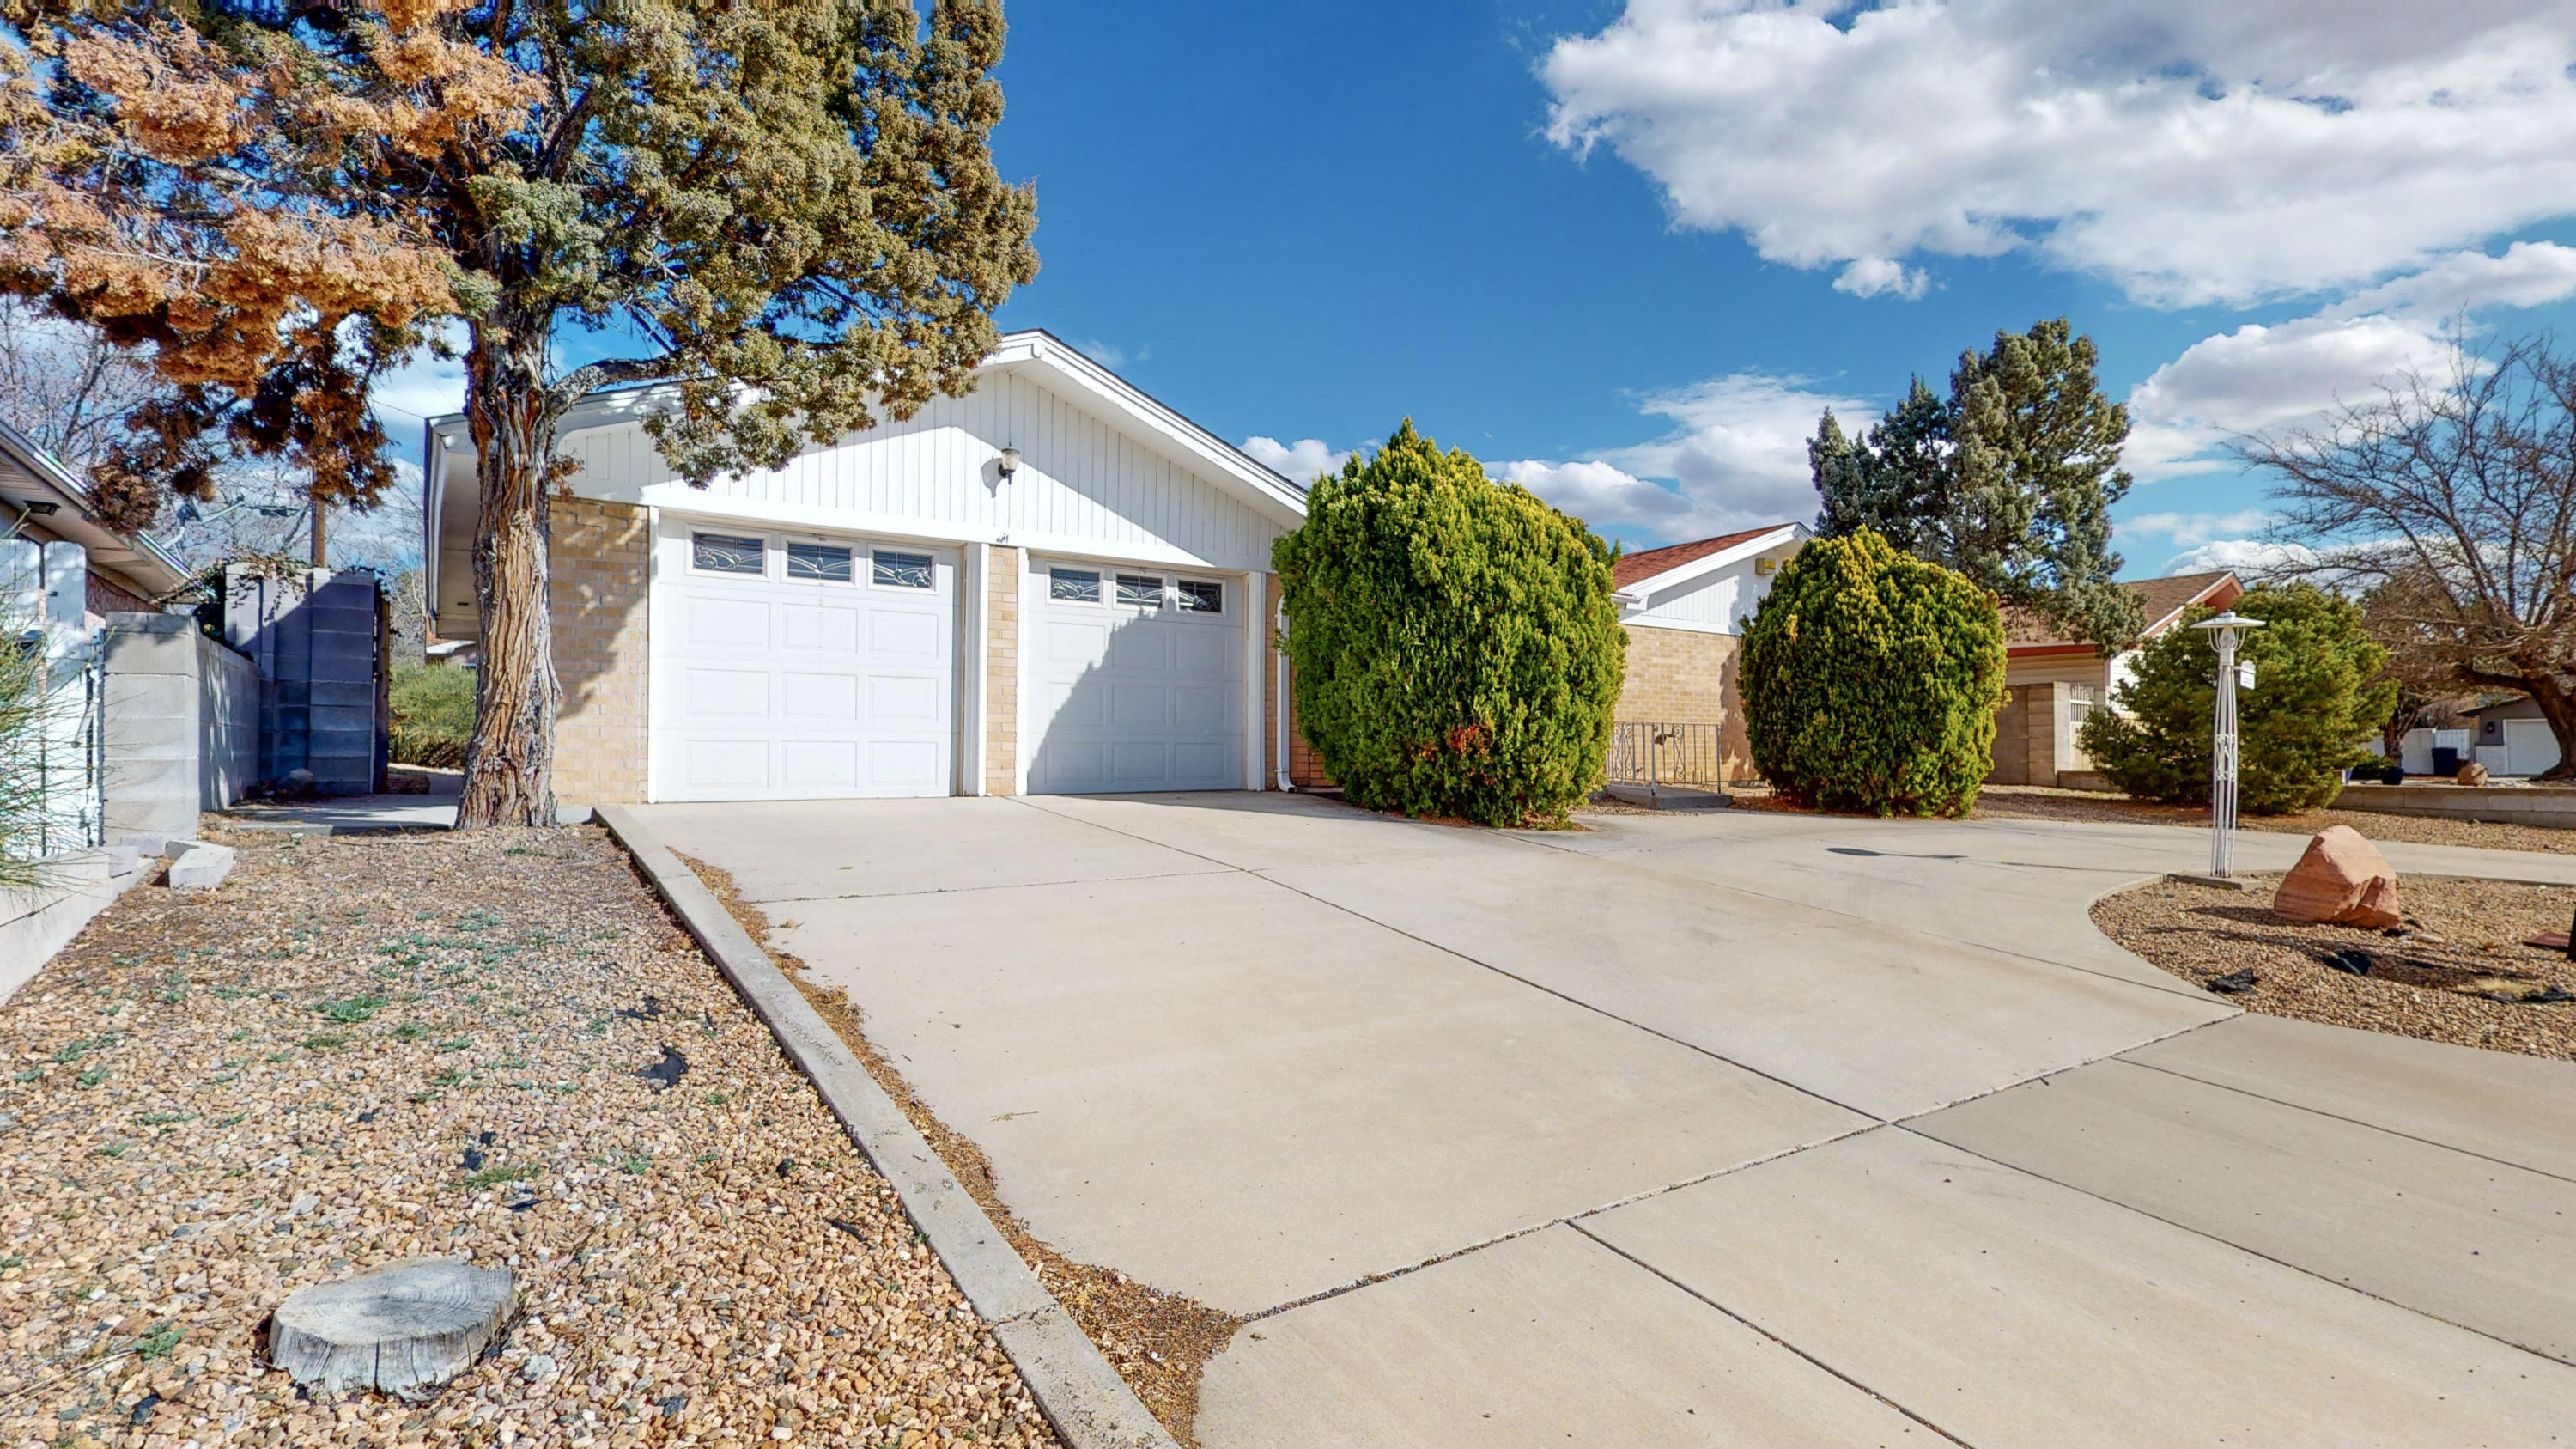 Come and see this adorable 3 bedroom 2 bathroom home conveniently located close to Albuquerque's popular uptown. This home boasts 2 bedrooms with connected bathrooms. The third bedroom can be used as an office or bedroom and has a wood burning fireplace. This recently updated home has brand new carpet installed February 2020, Fresh Paint throughout the entire home and is priced to sell fast!!!! This private/hidden community located in Vista Encantada Subdivision is perfect if you like privacy but also love convenience.